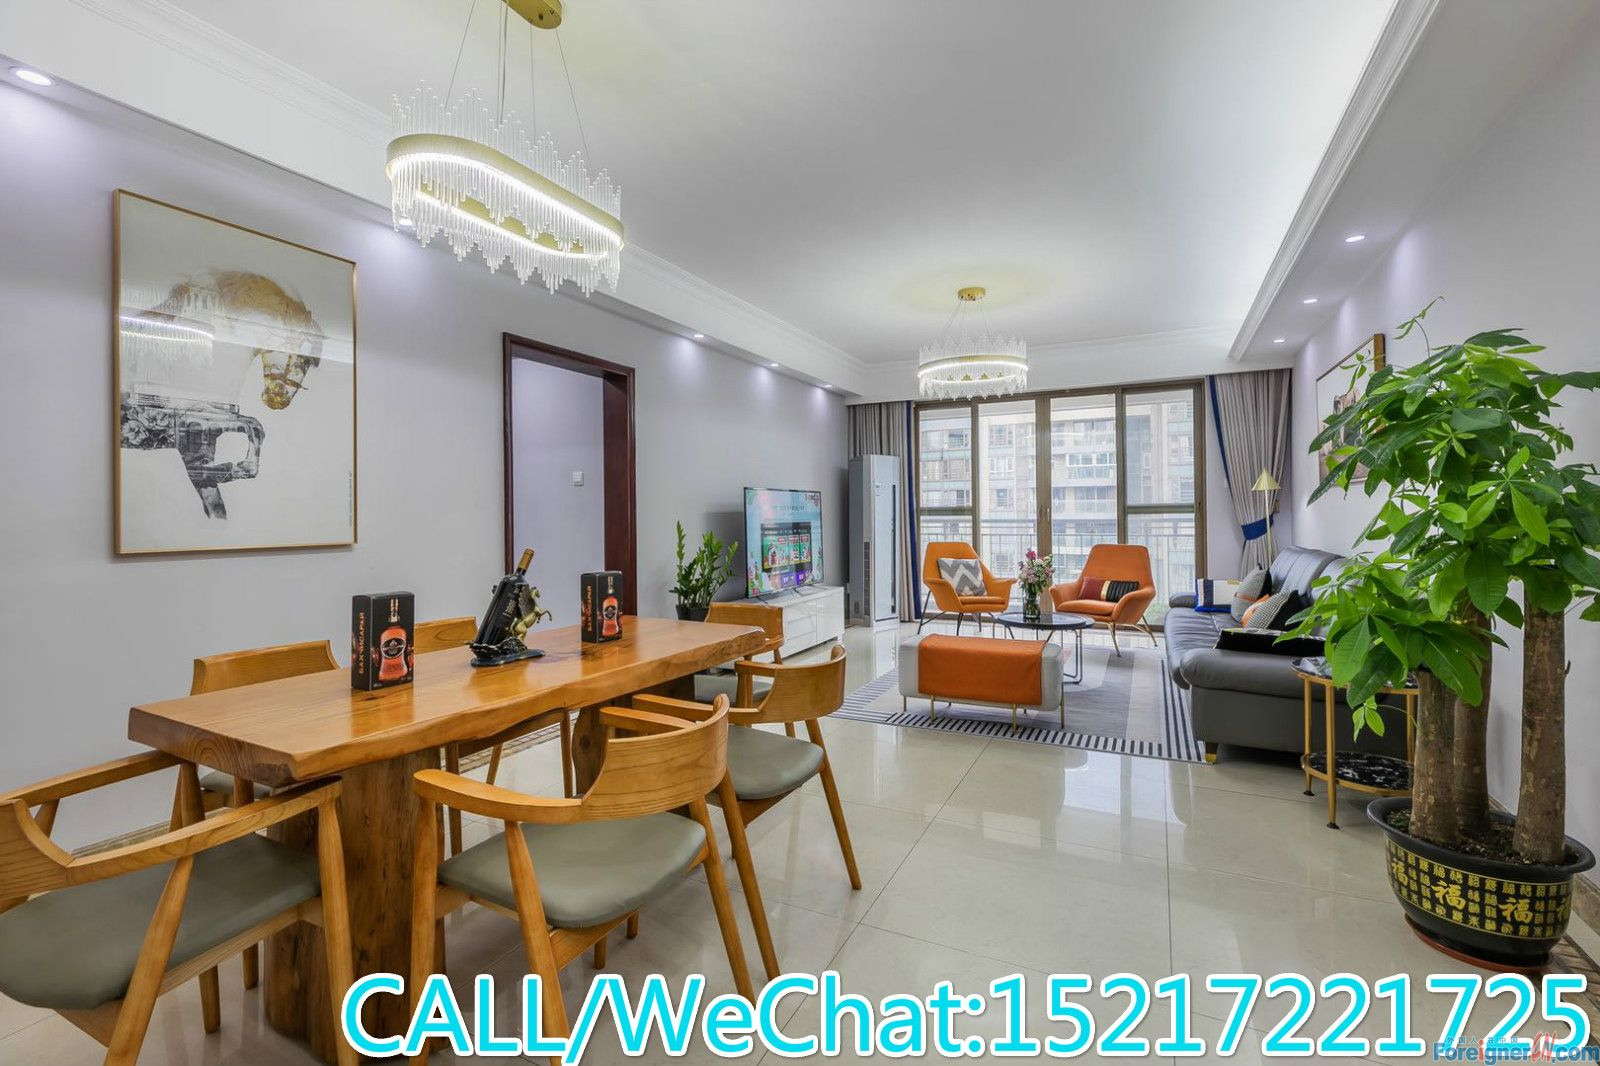 Blossom Cove-concise style 3brs,fully furnished,garden view,quiet place,CBD AREA.convenient.